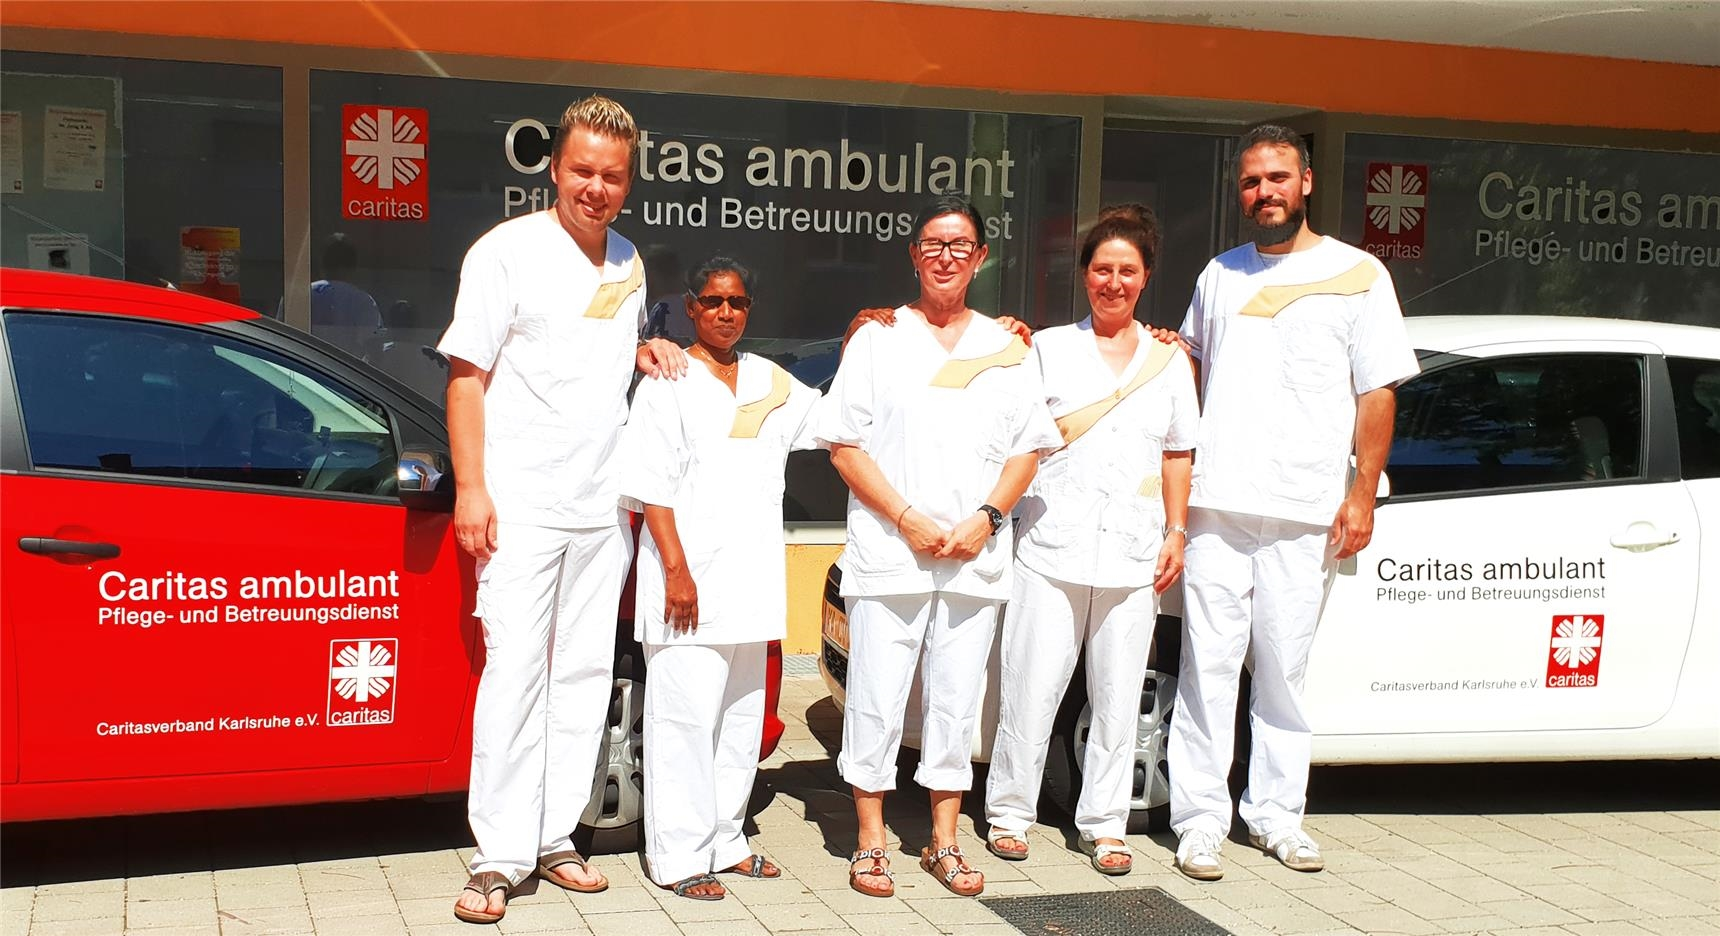 Caritas ambulant